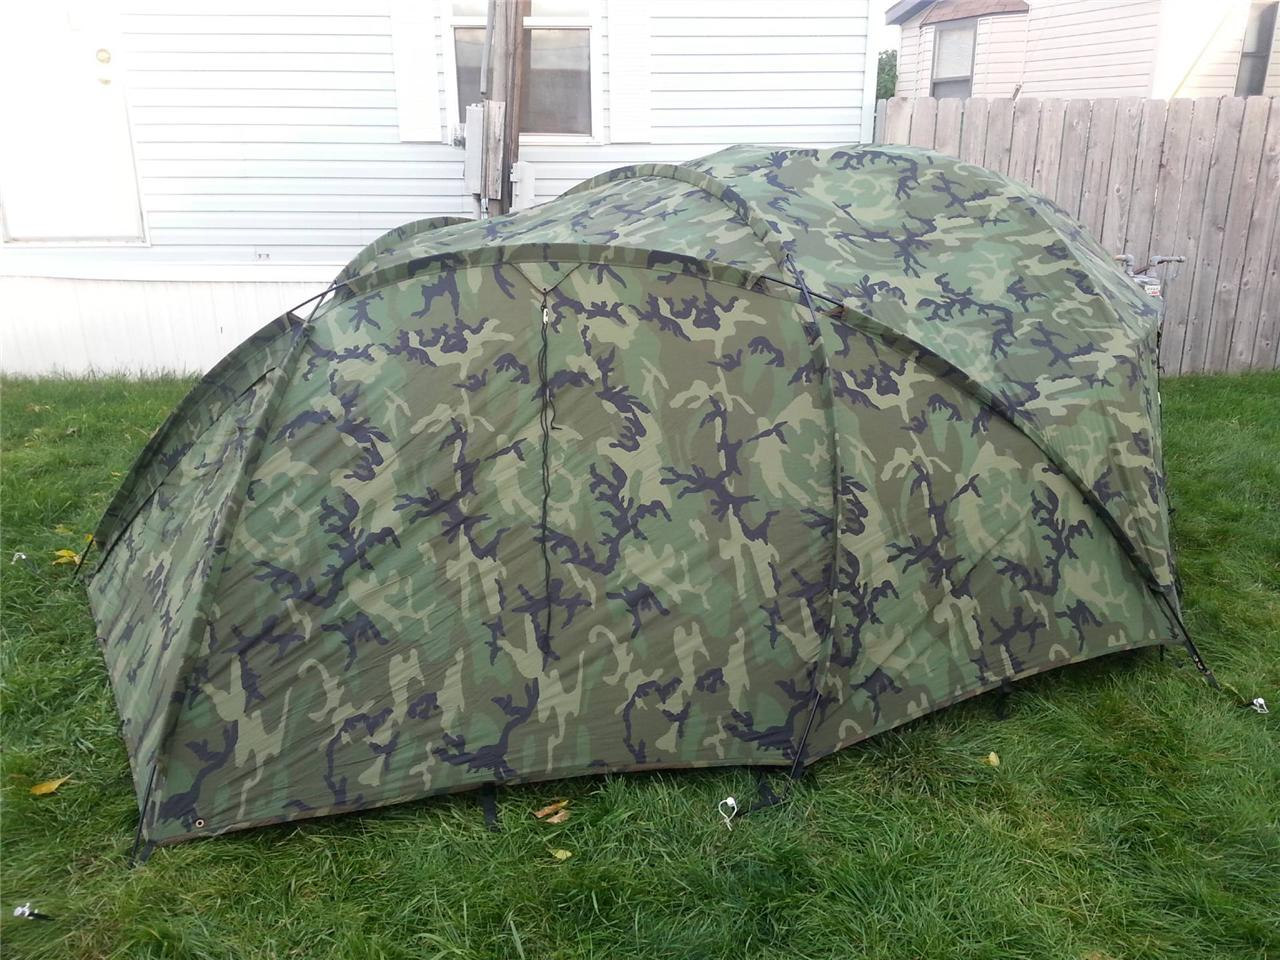 ... The-North-Face-ECWS-ECWT-Camo-replacement-Tent- & The North Face ECWS ECWT Camo replacement Tent FLY u0026 Poles Eureka ...